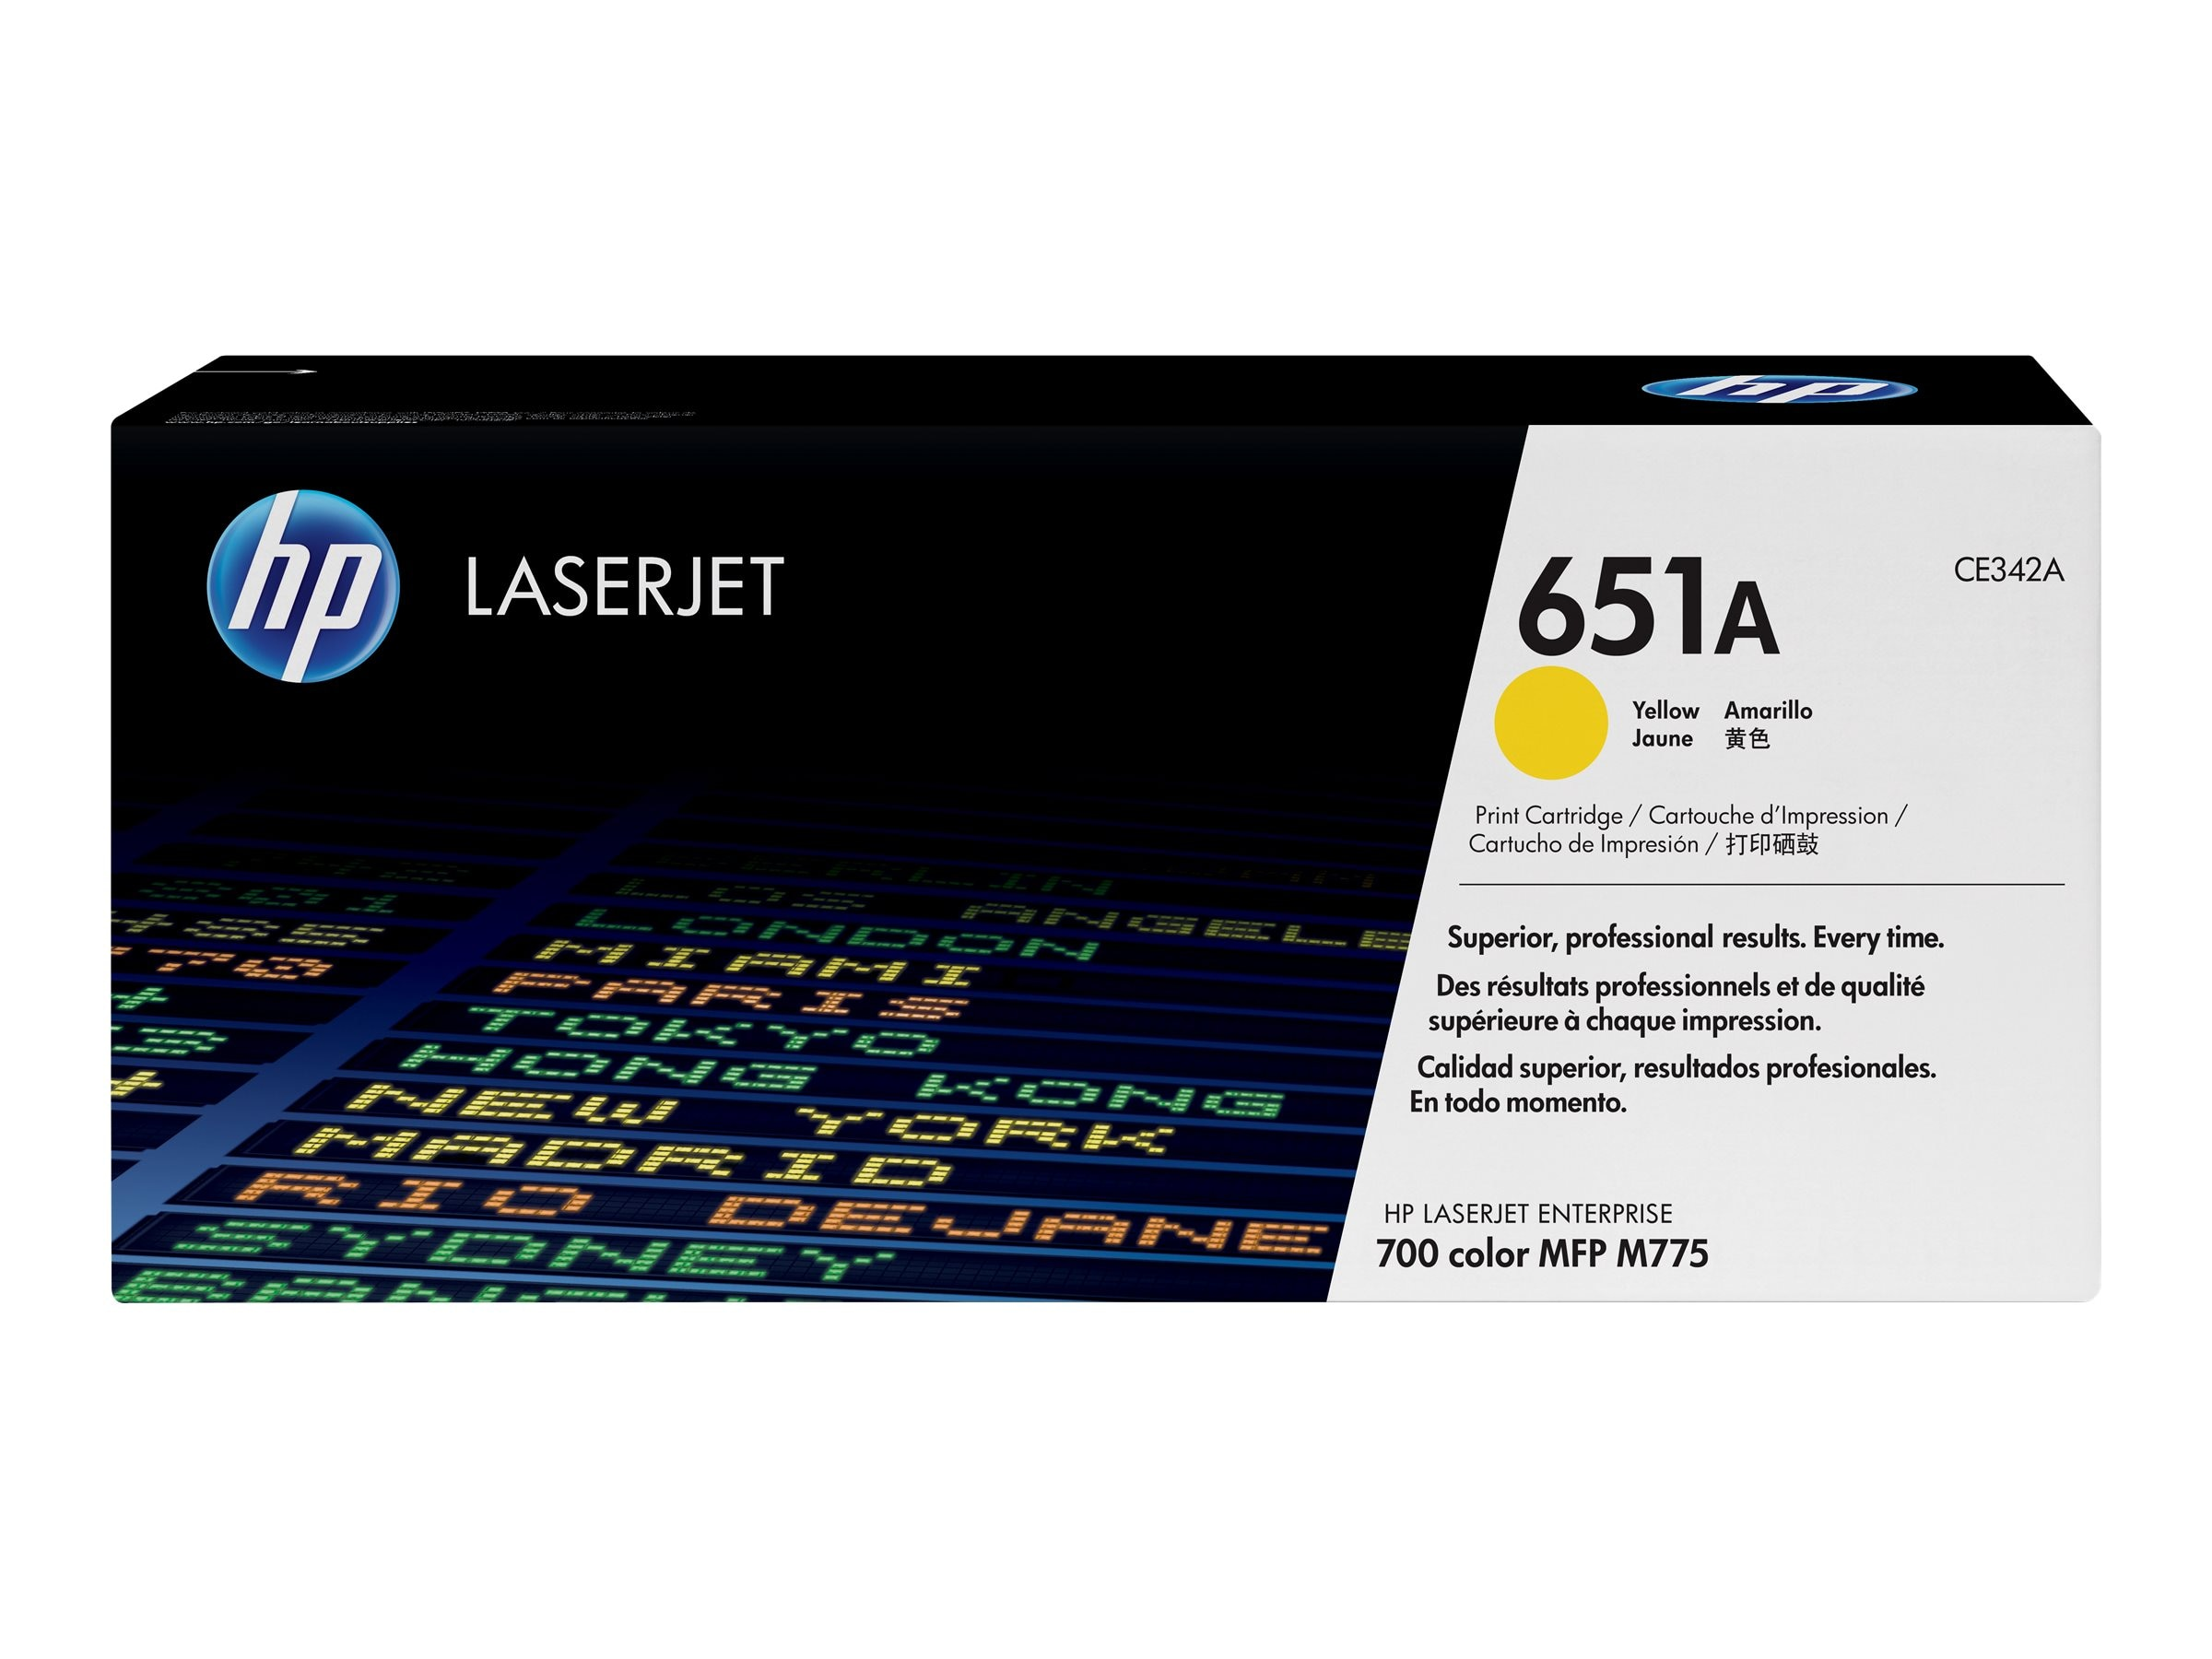 HP 651A Yellow LaserJet Toner Cartridge (TAA Compliant)